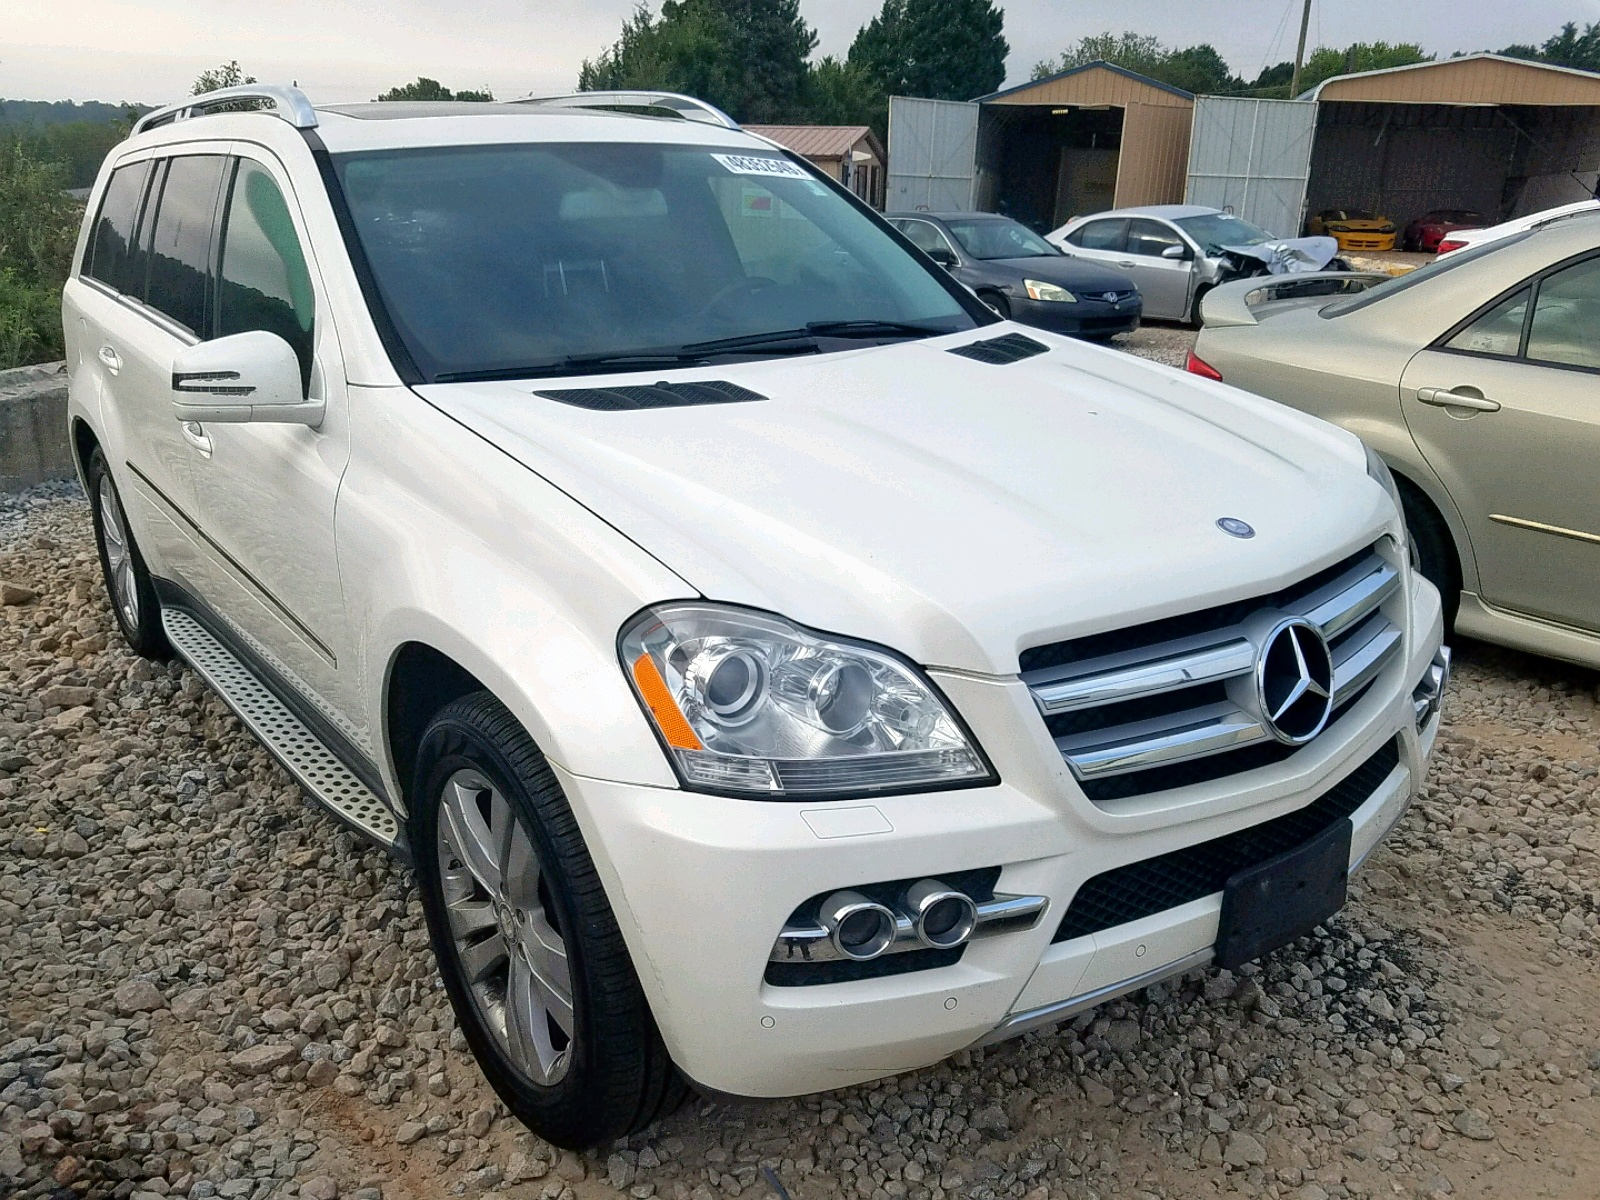 4JGBF7BE3BA653293 - 2011 Mercedes-Benz Gl 450 4Ma 4.6L Left View